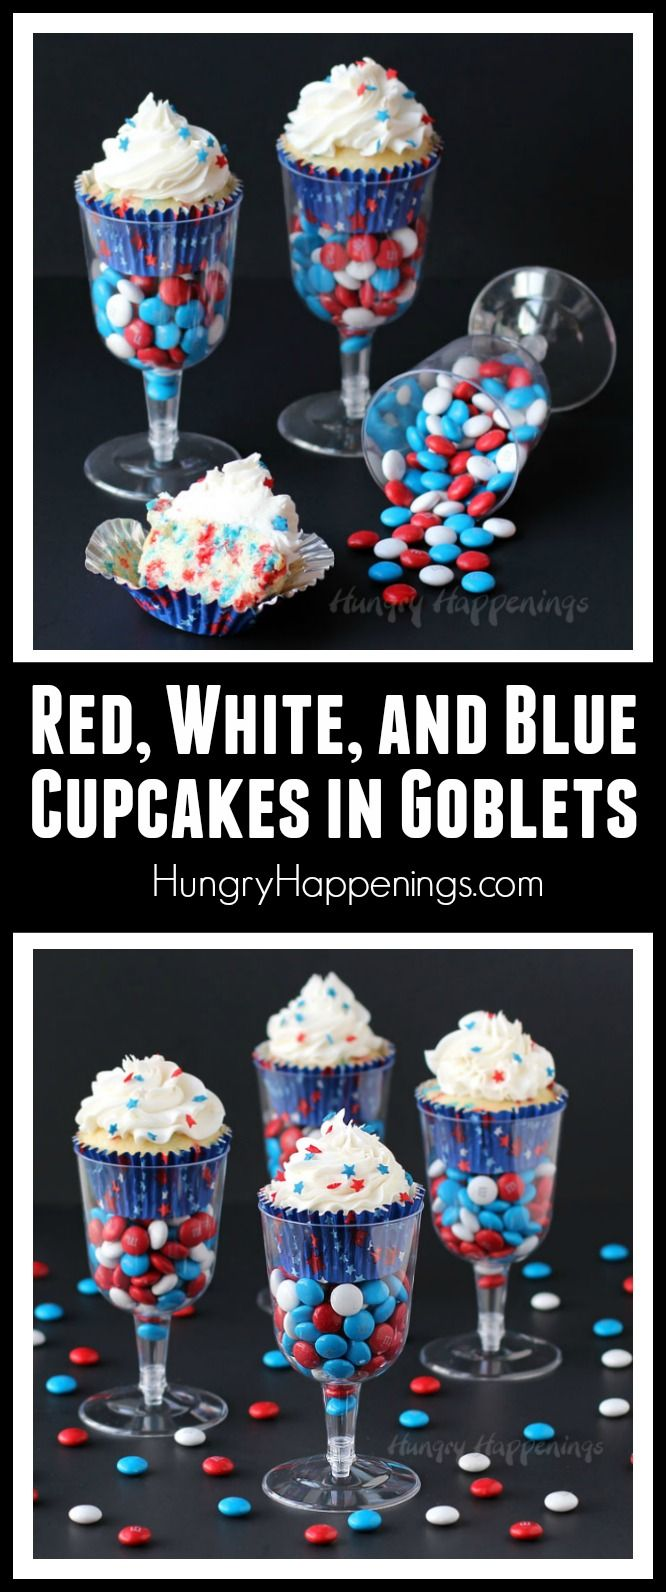 Fill wine goblets or champagne flutes with red, white and blue candy then top it off with a festively decorated funfetti red, white, and blue cupcake to serve to 4th of July, Memorial Day, Veterans Day, Labor Day or any day.